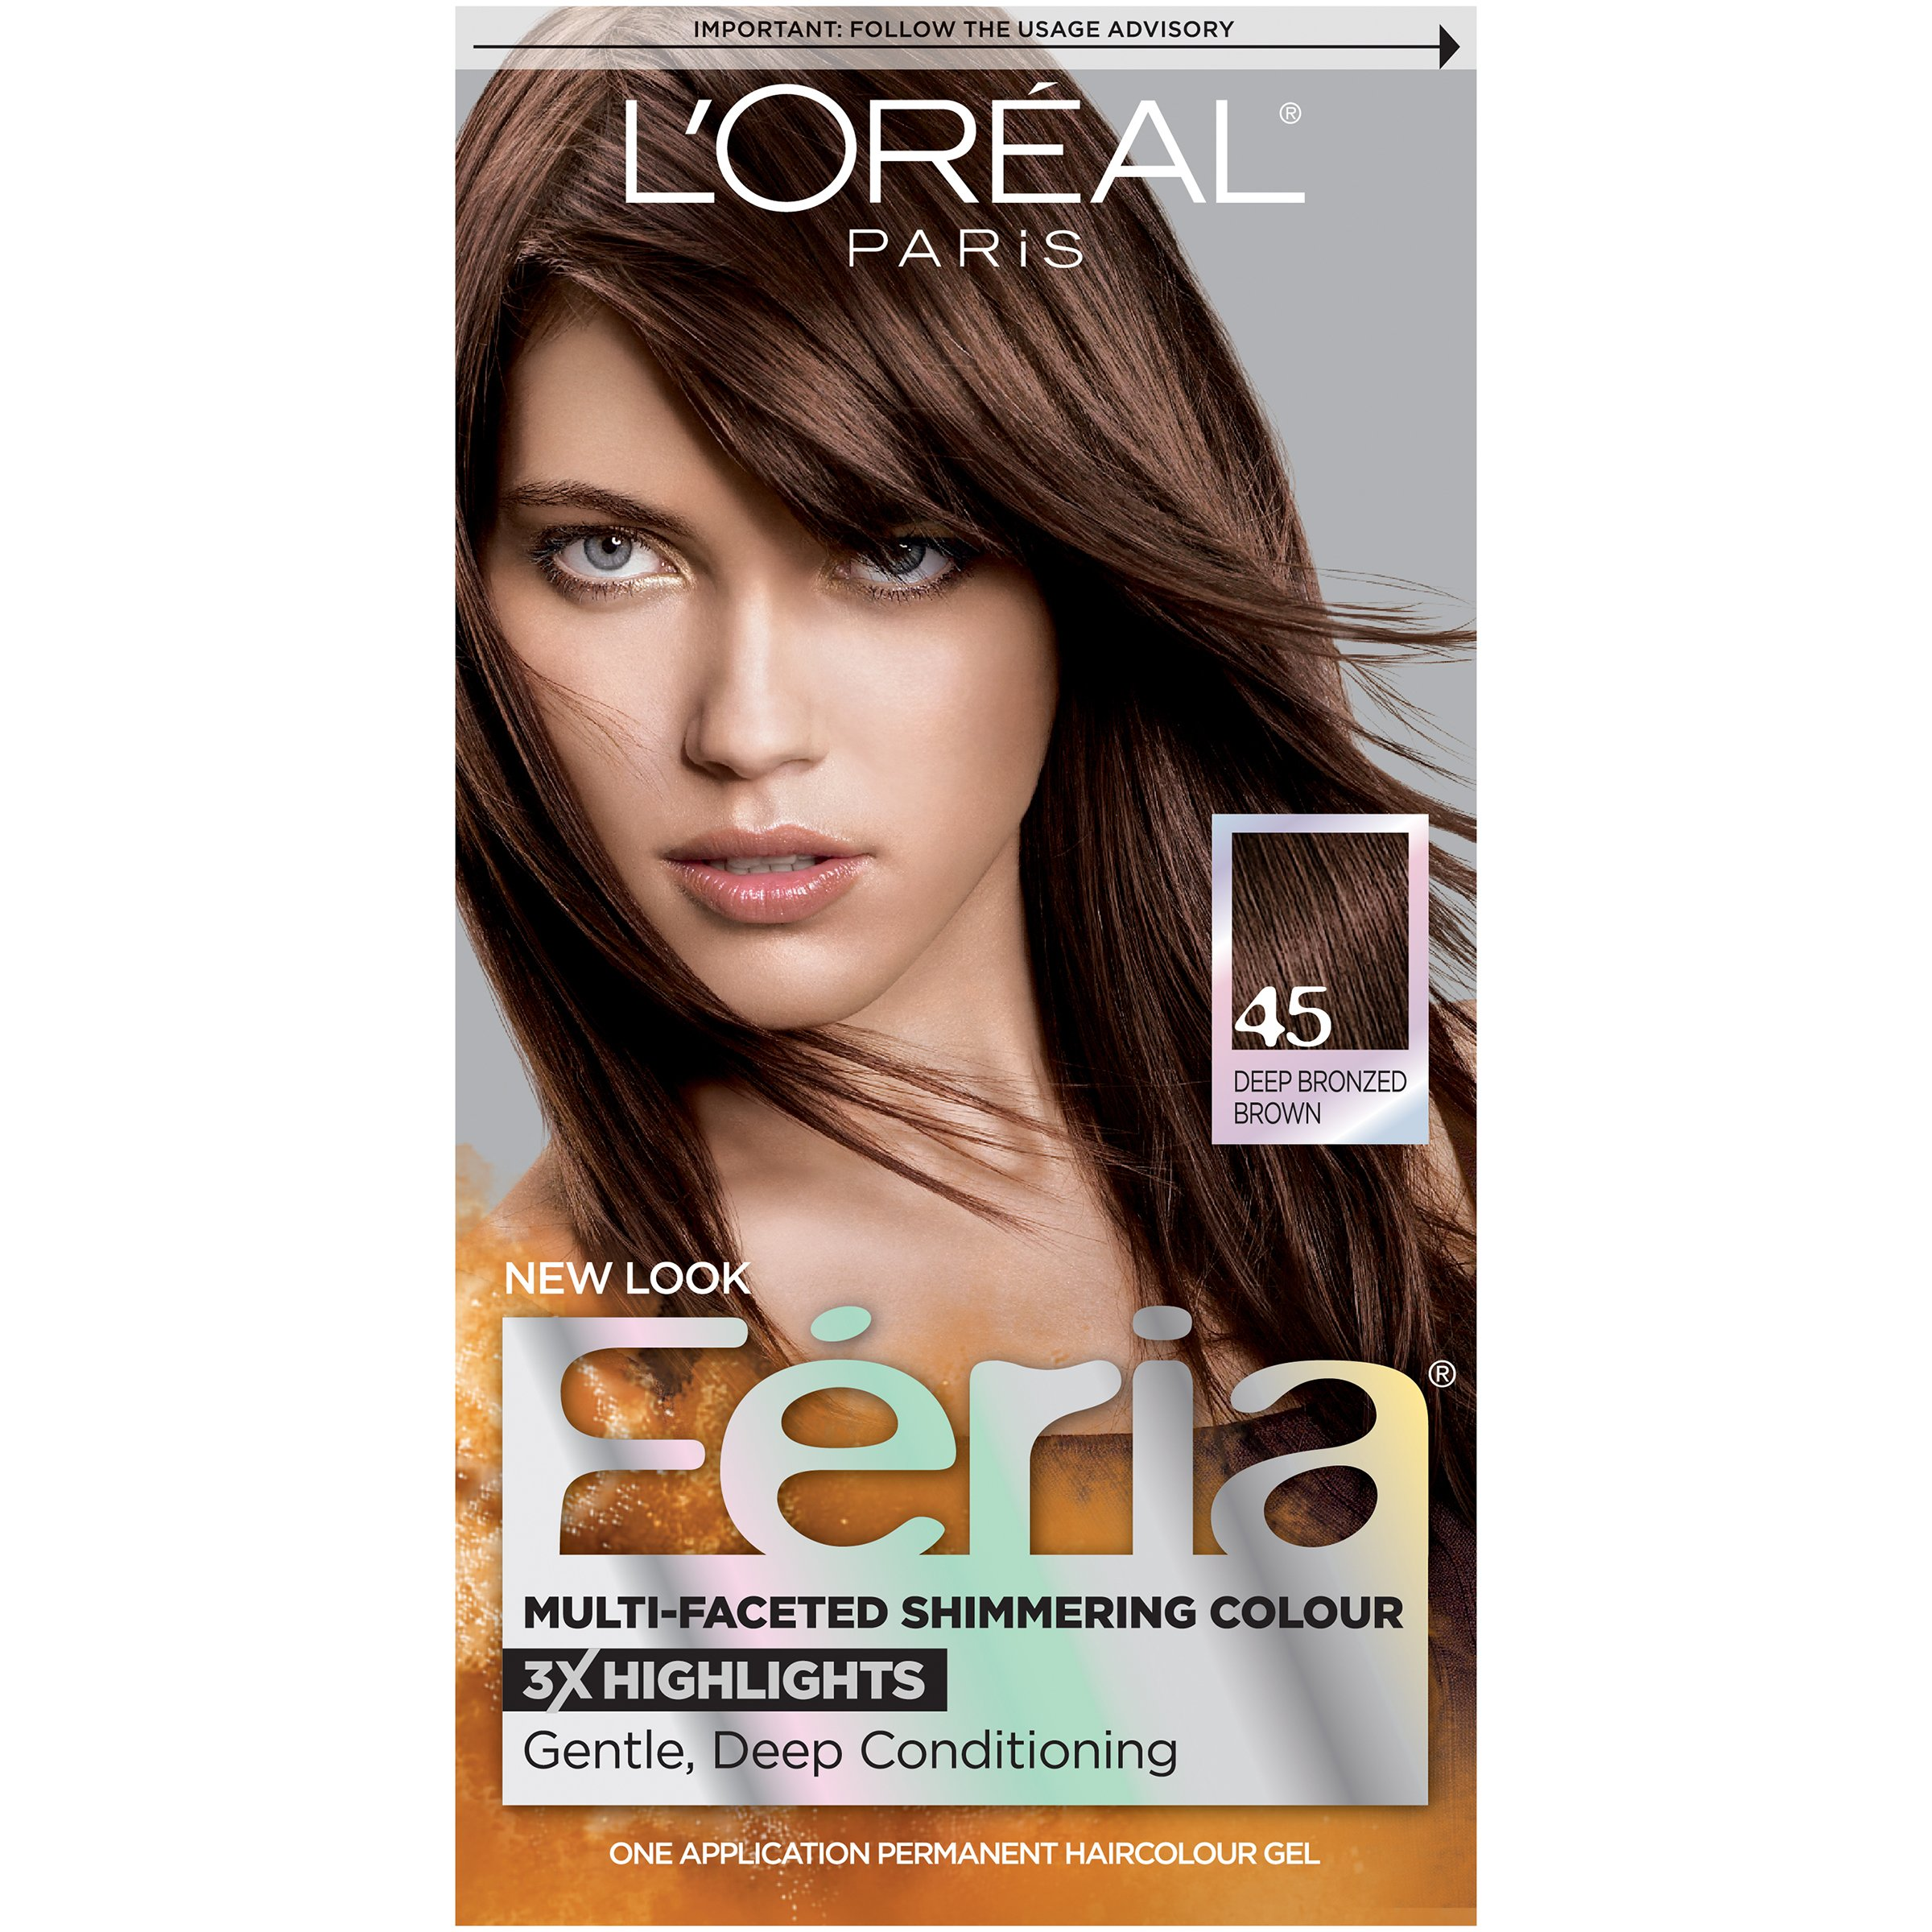 Amazon Loral Paris Feria Permanent Hair Color 56 Brilliant